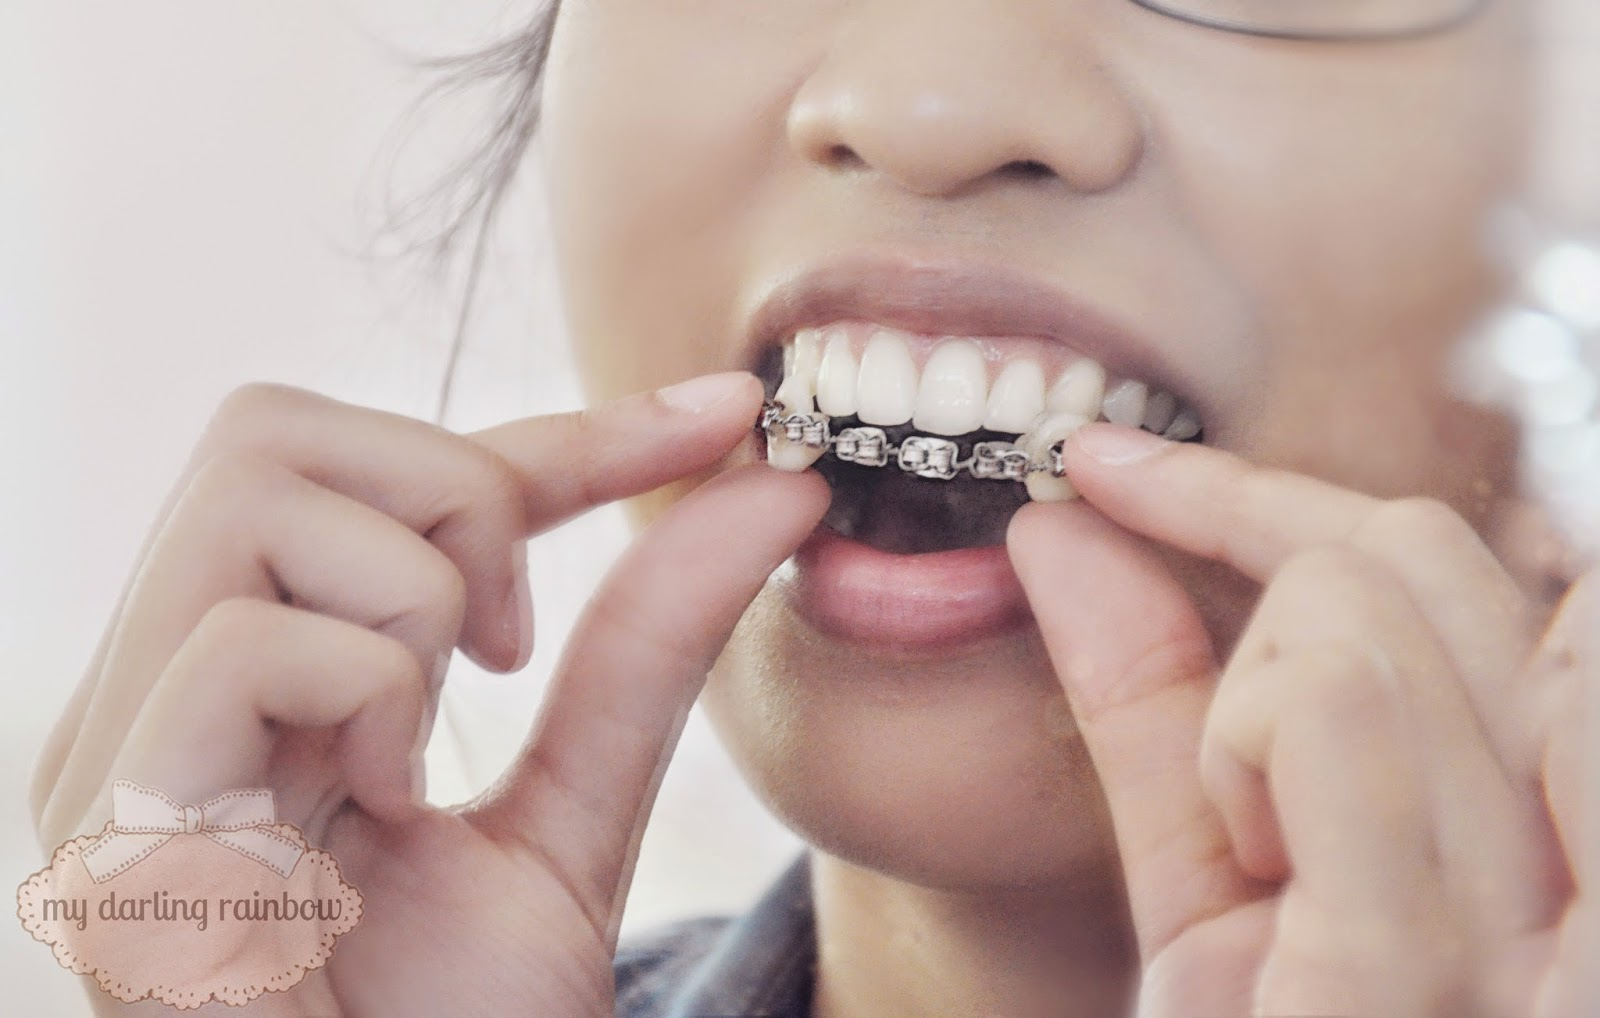 My darling rainbow diy belivable costume braces put in and remove your braces by using the vampire teeth to handle them since theyre the most secure section solutioingenieria